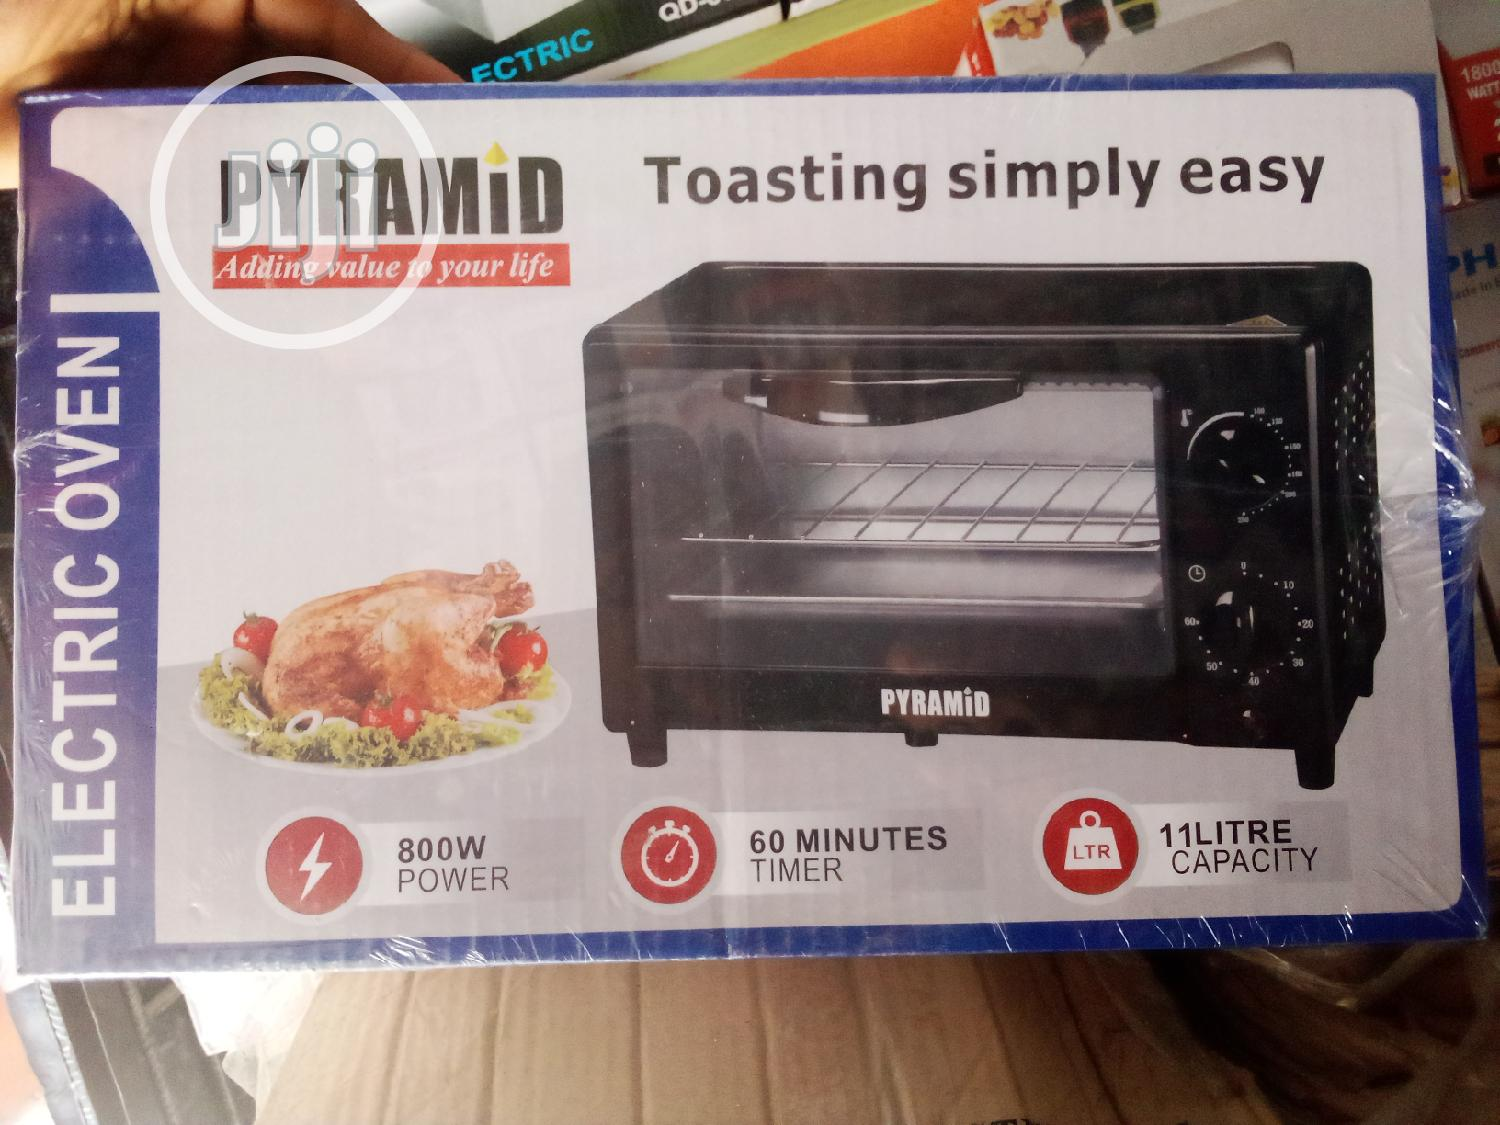 Pyramid 11litre Electric Oven